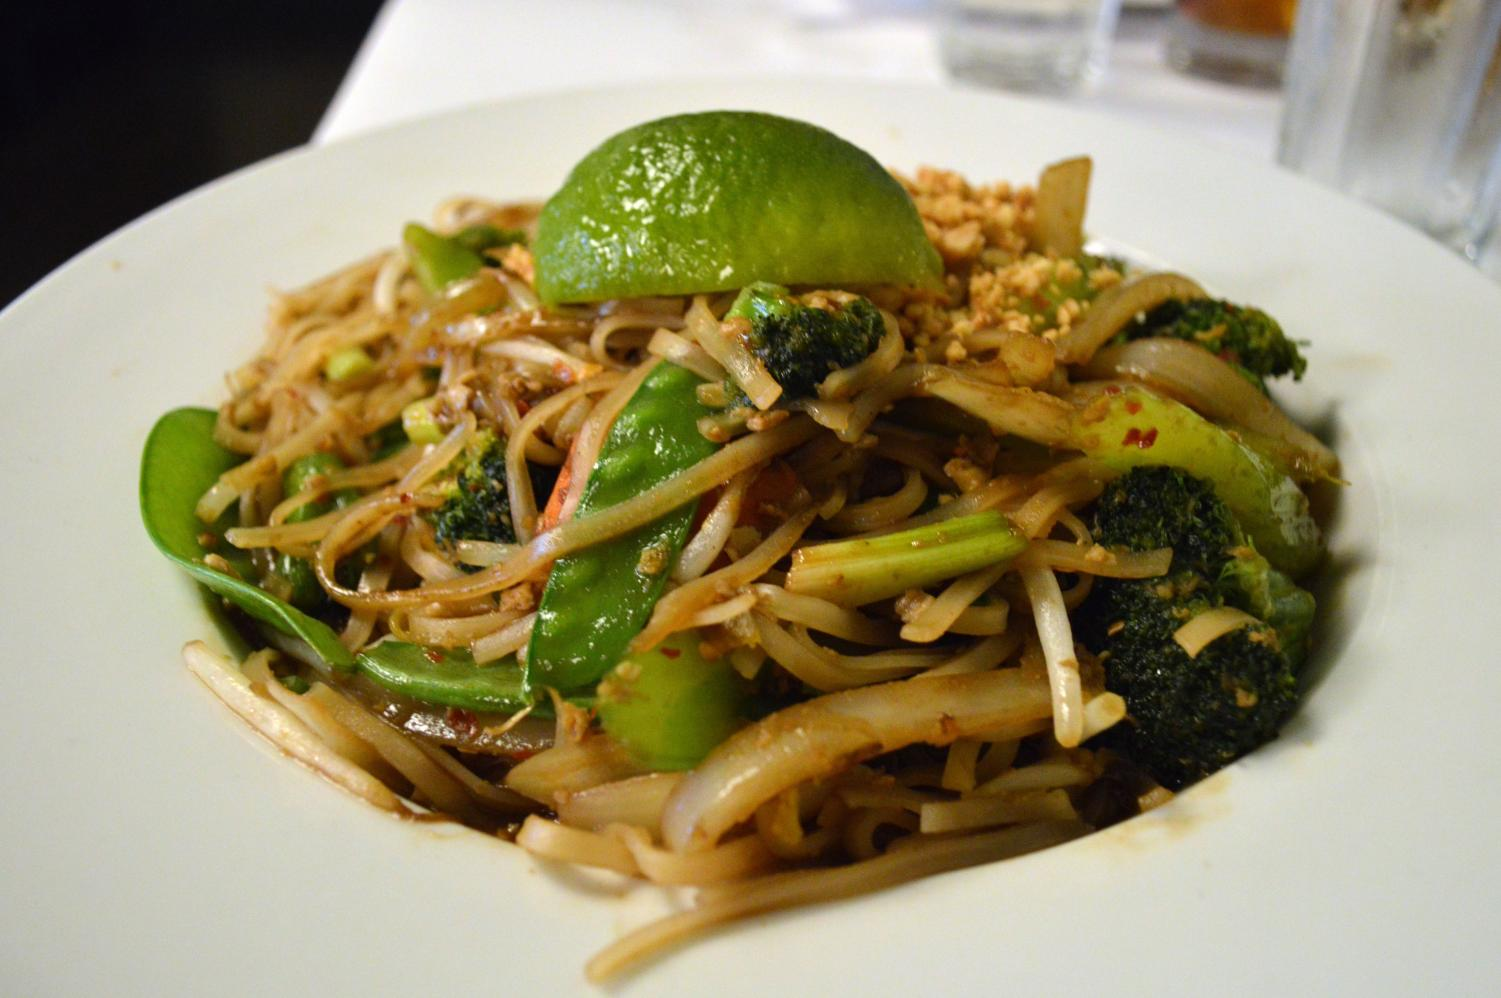 The vegetable pad thai at Wok in the Park which scored three stars. The pad thai provided a significant amount of spice, visible in the red pieces in the sauce.